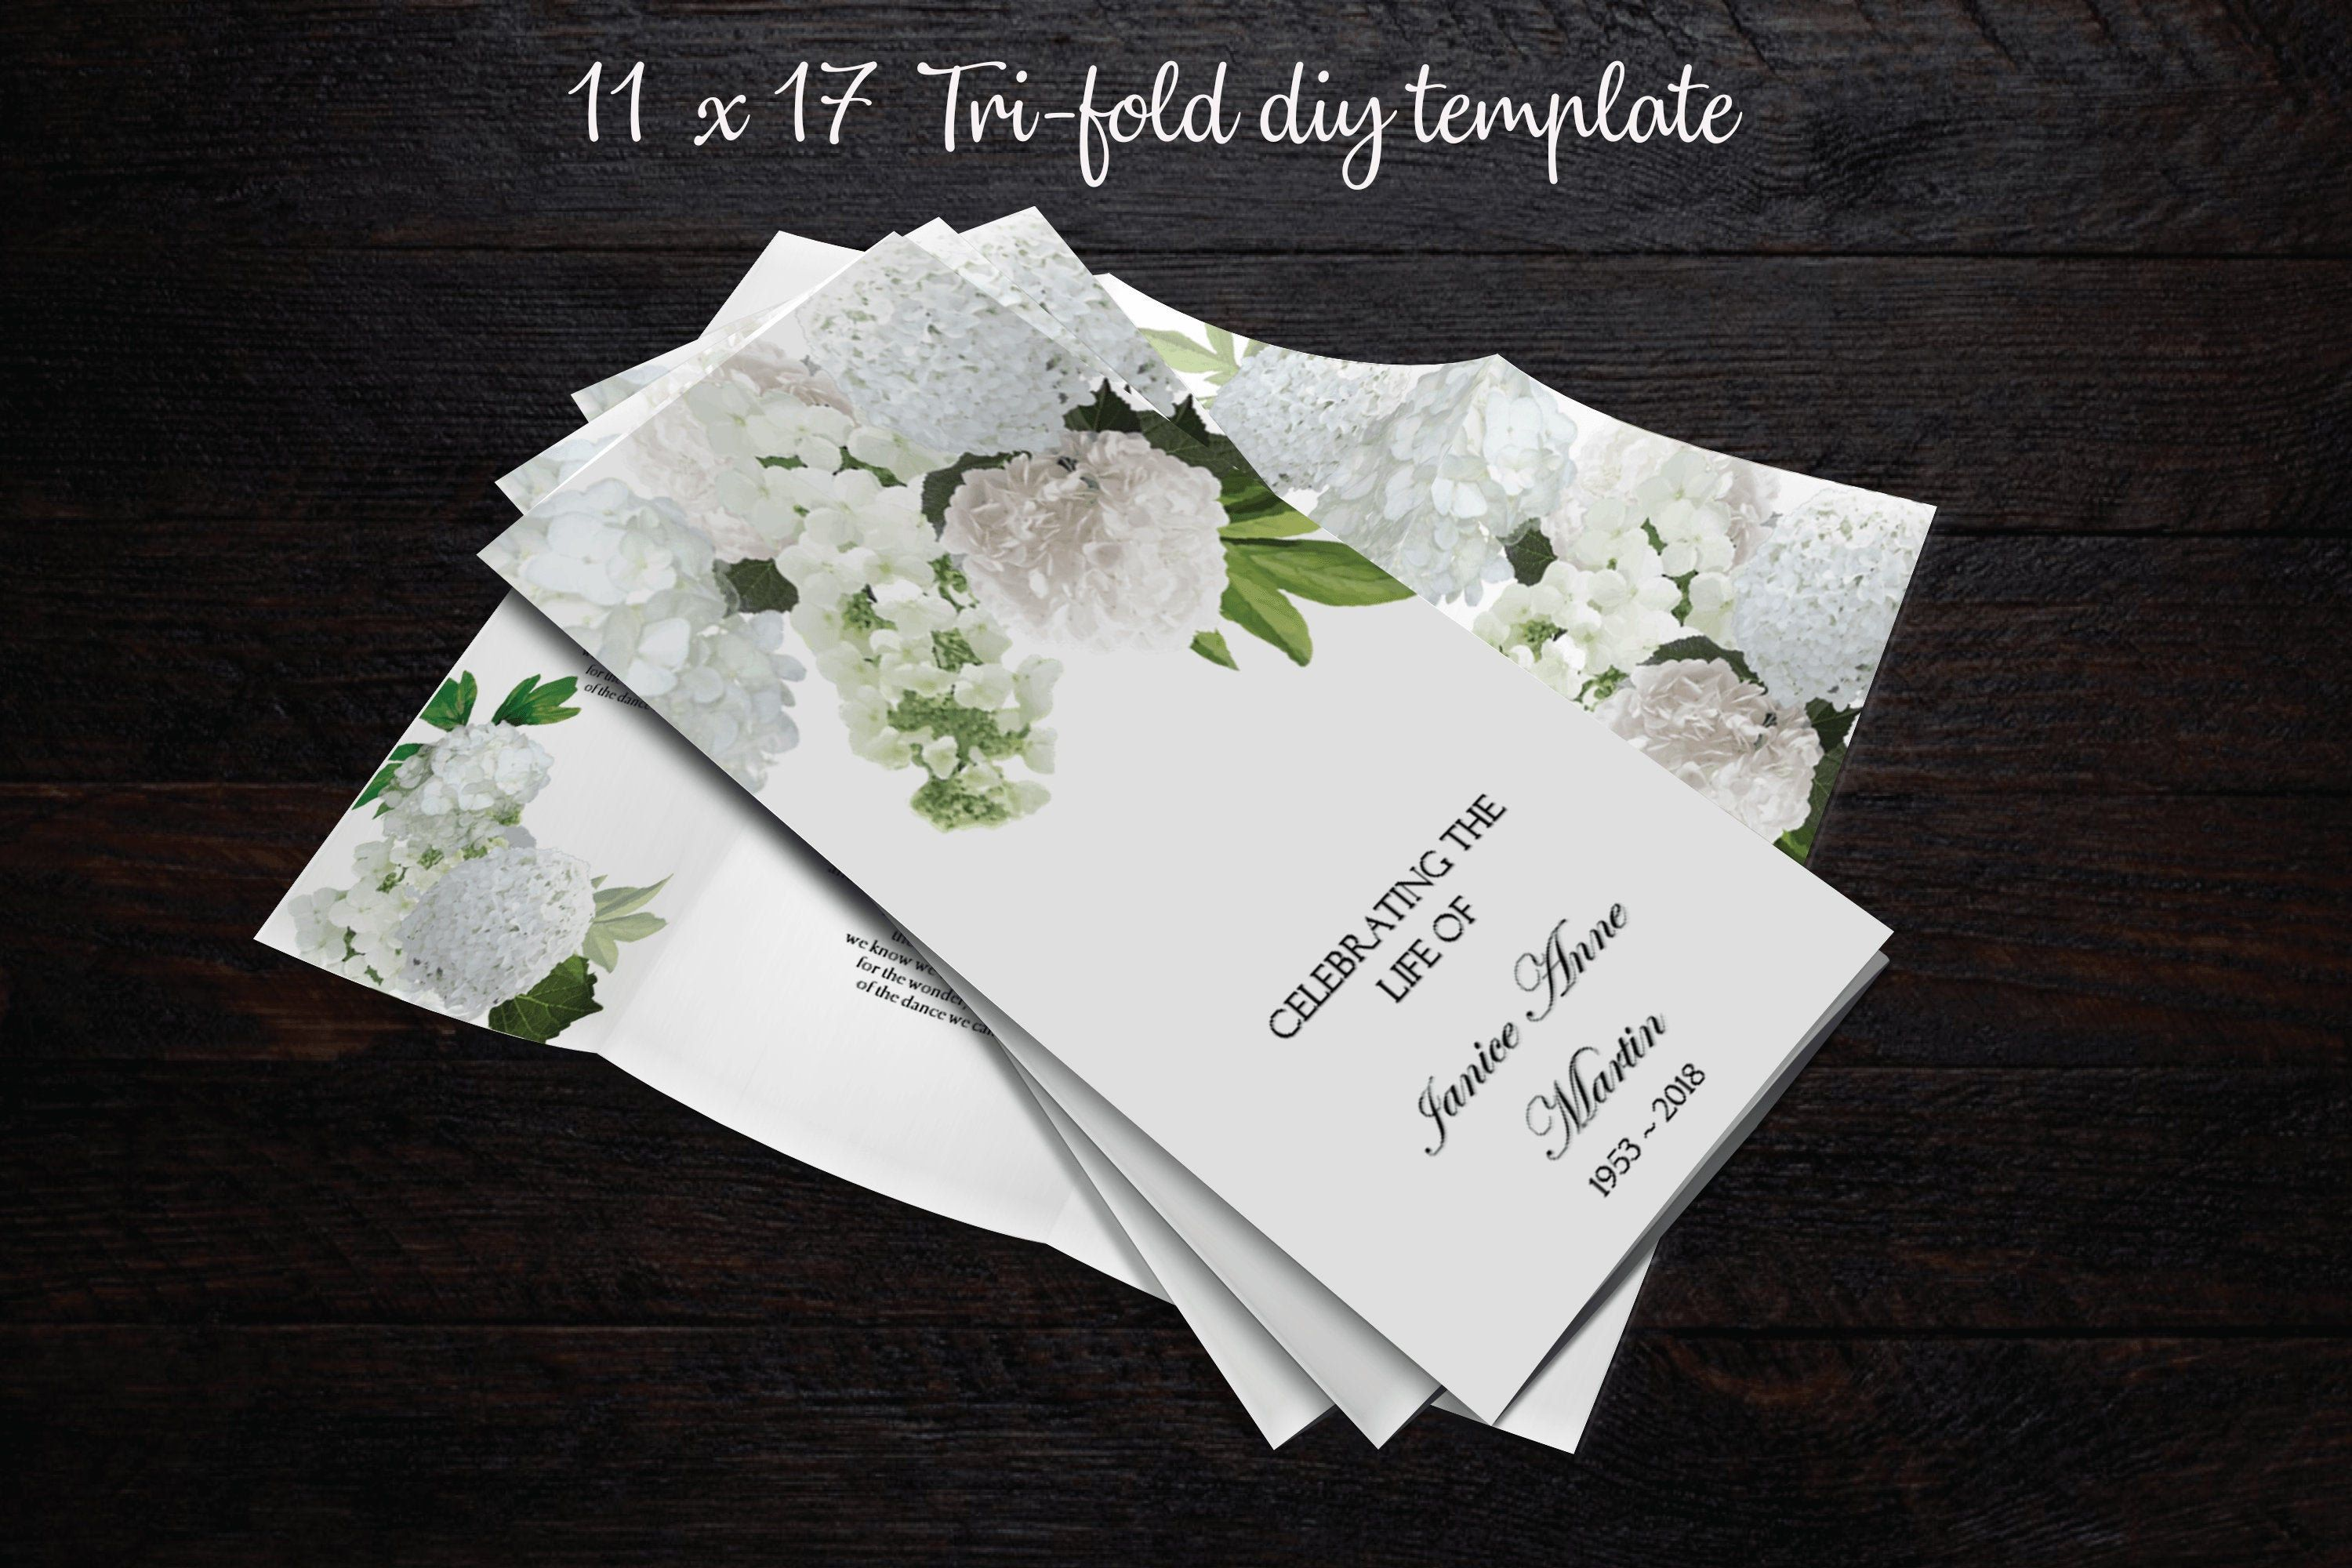 Funeral Program Template 17 X 11 Double Sided Tri Fold Program Microsoft Word Memorial Program Template White Hydrangeas Funeral Program Template Funeral Programs Memorial Program